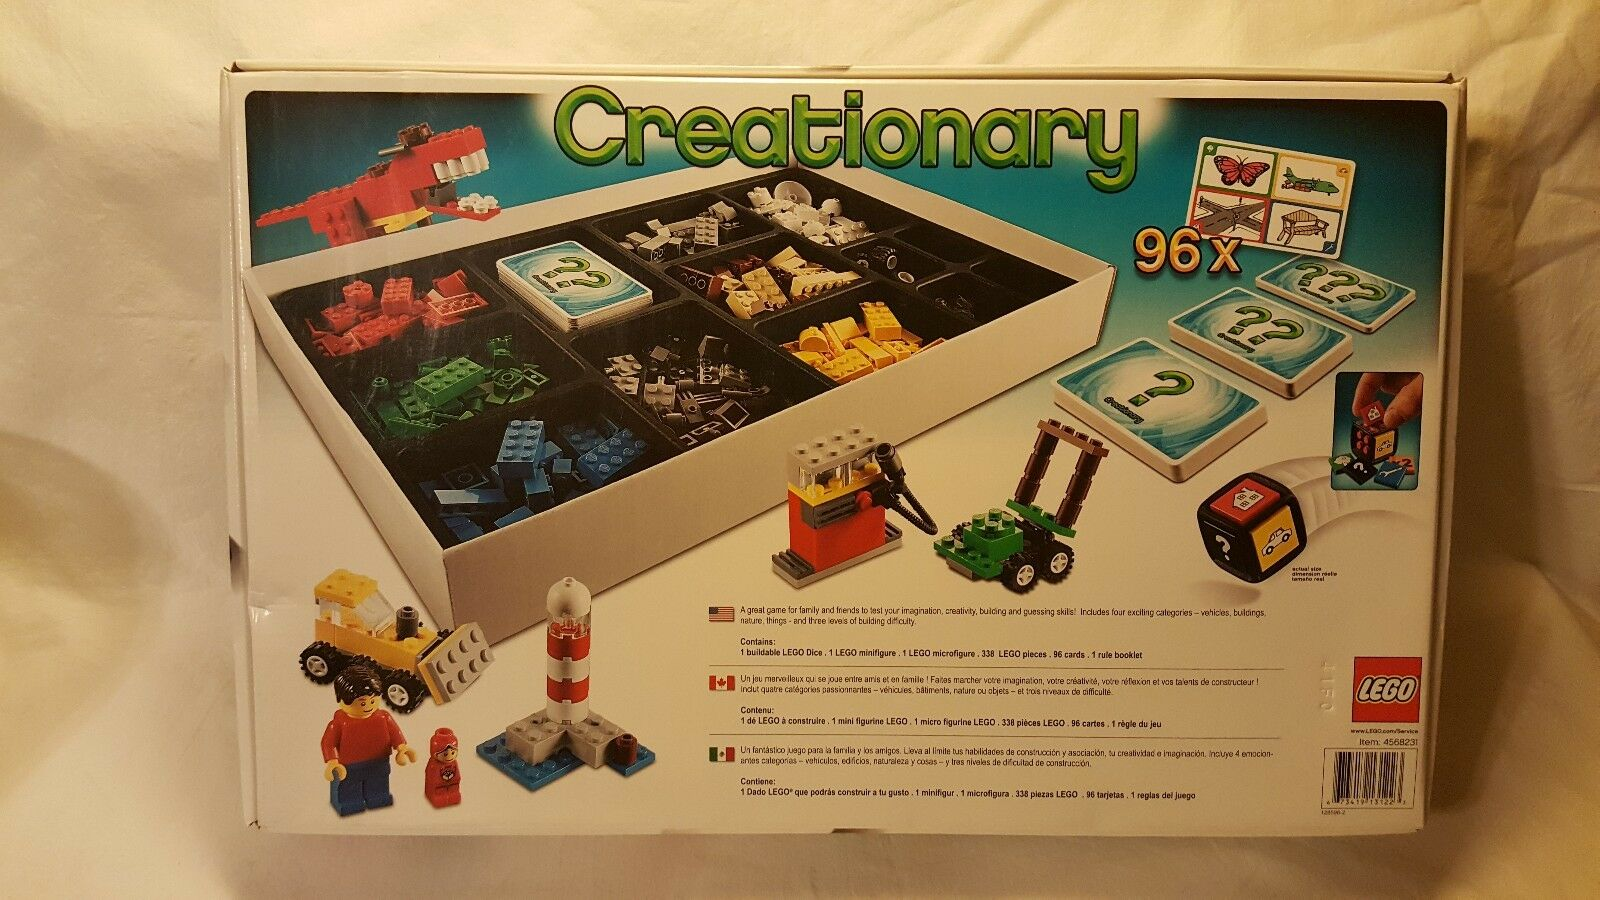 LEGO Creationary Creationary Creationary Game (3844) Building Set In Box Incomplete Discontinued 3d4263